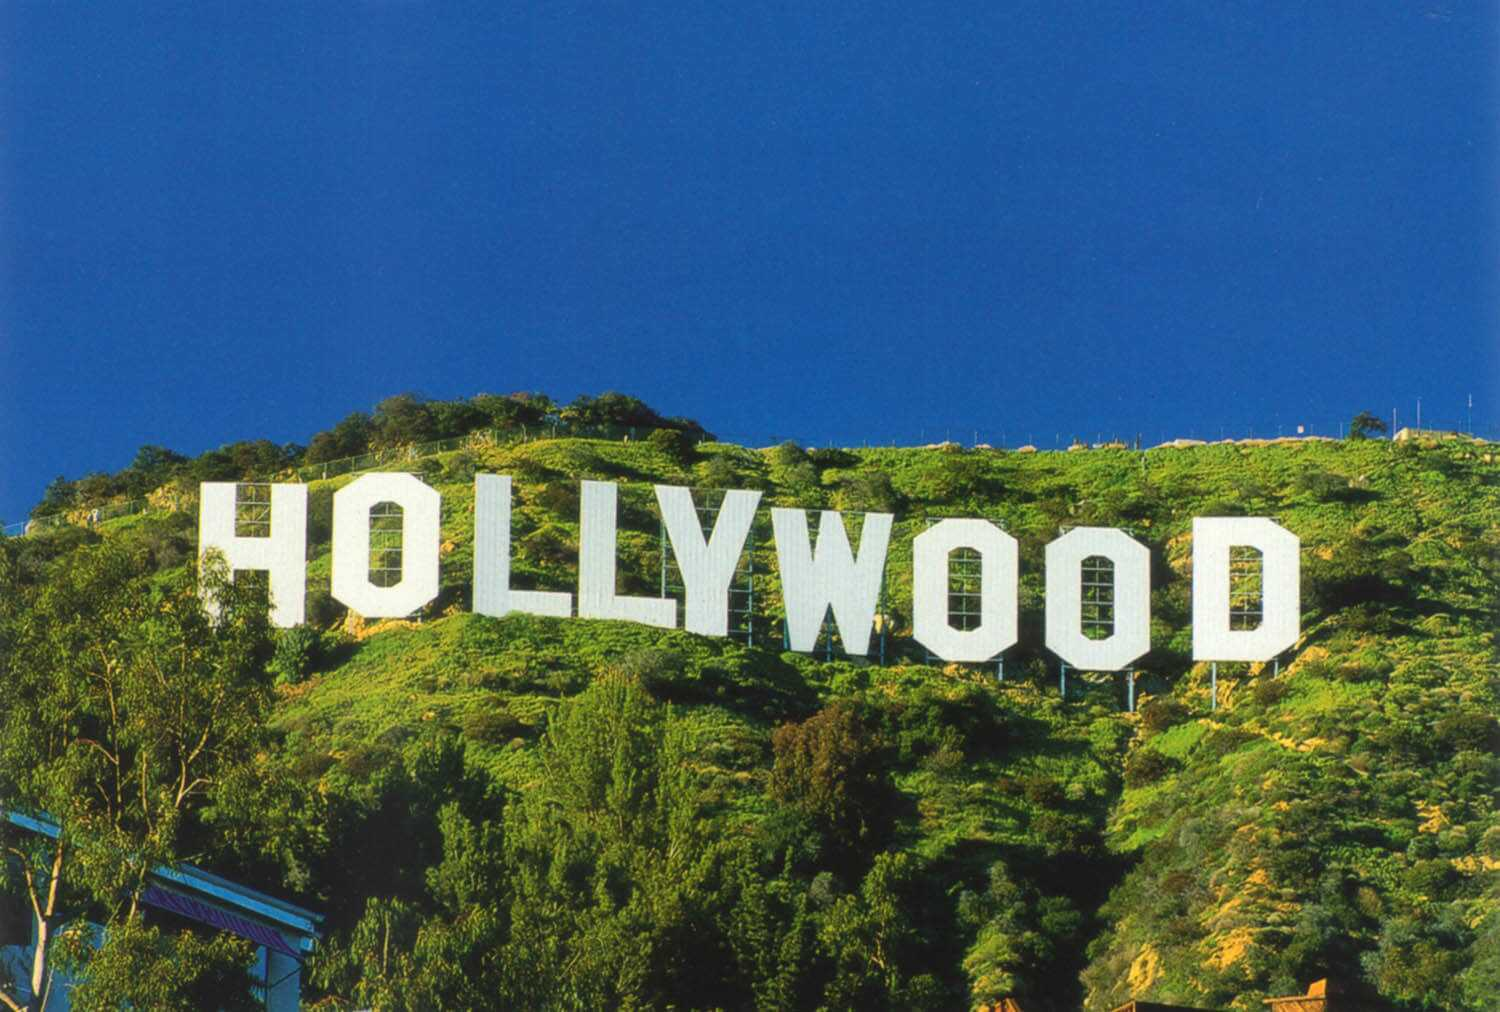 002-hollywoodsign_plus